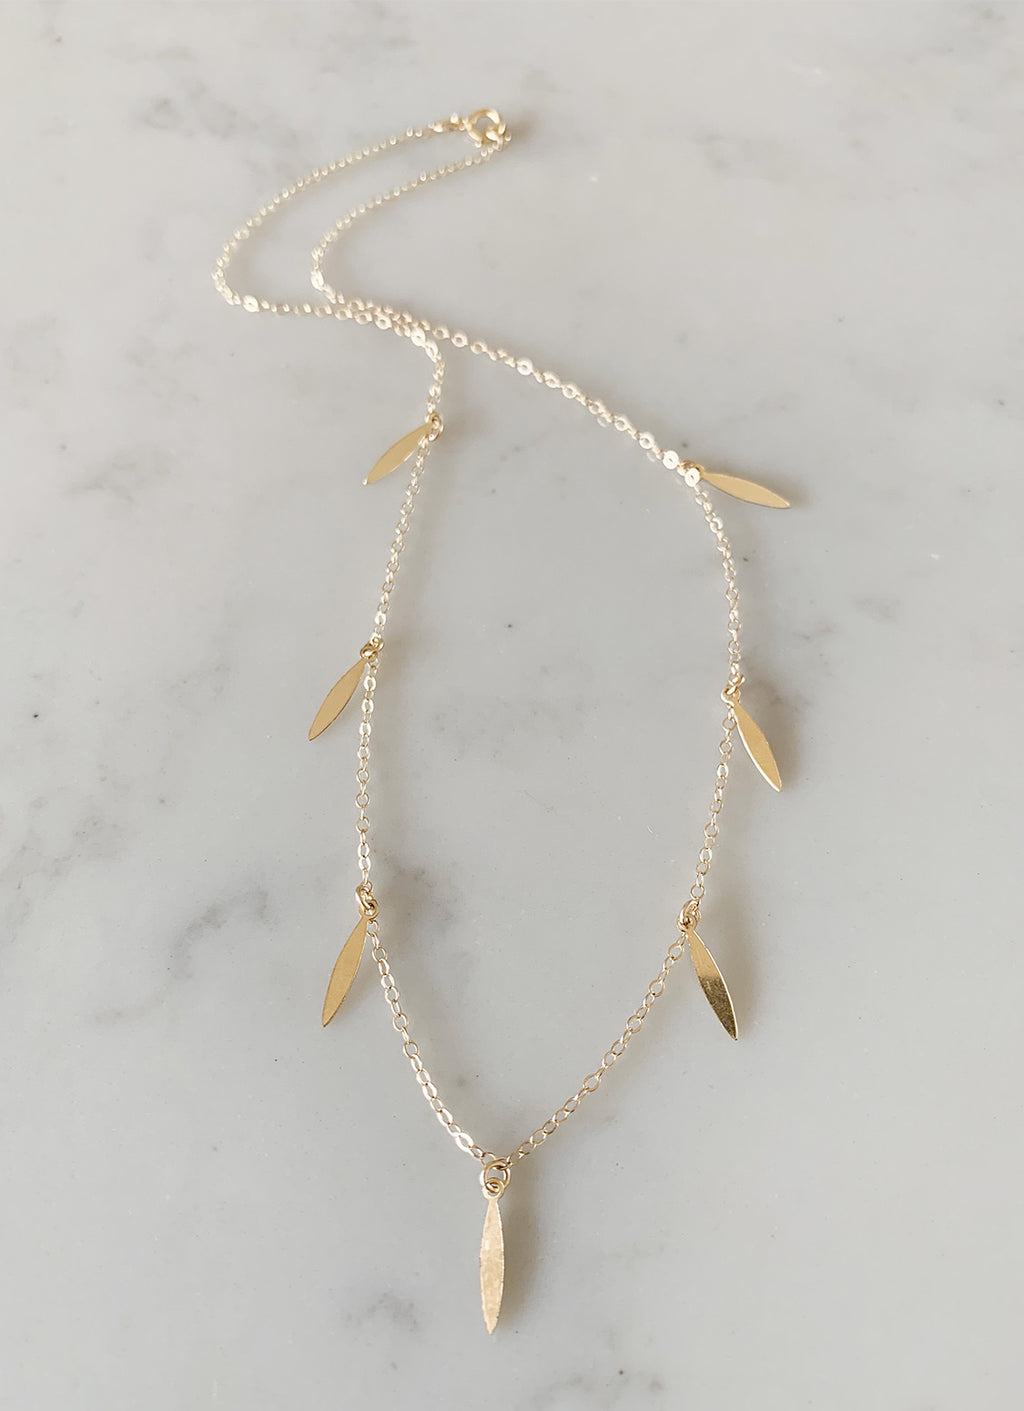 Gold-Filled Spears Necklace